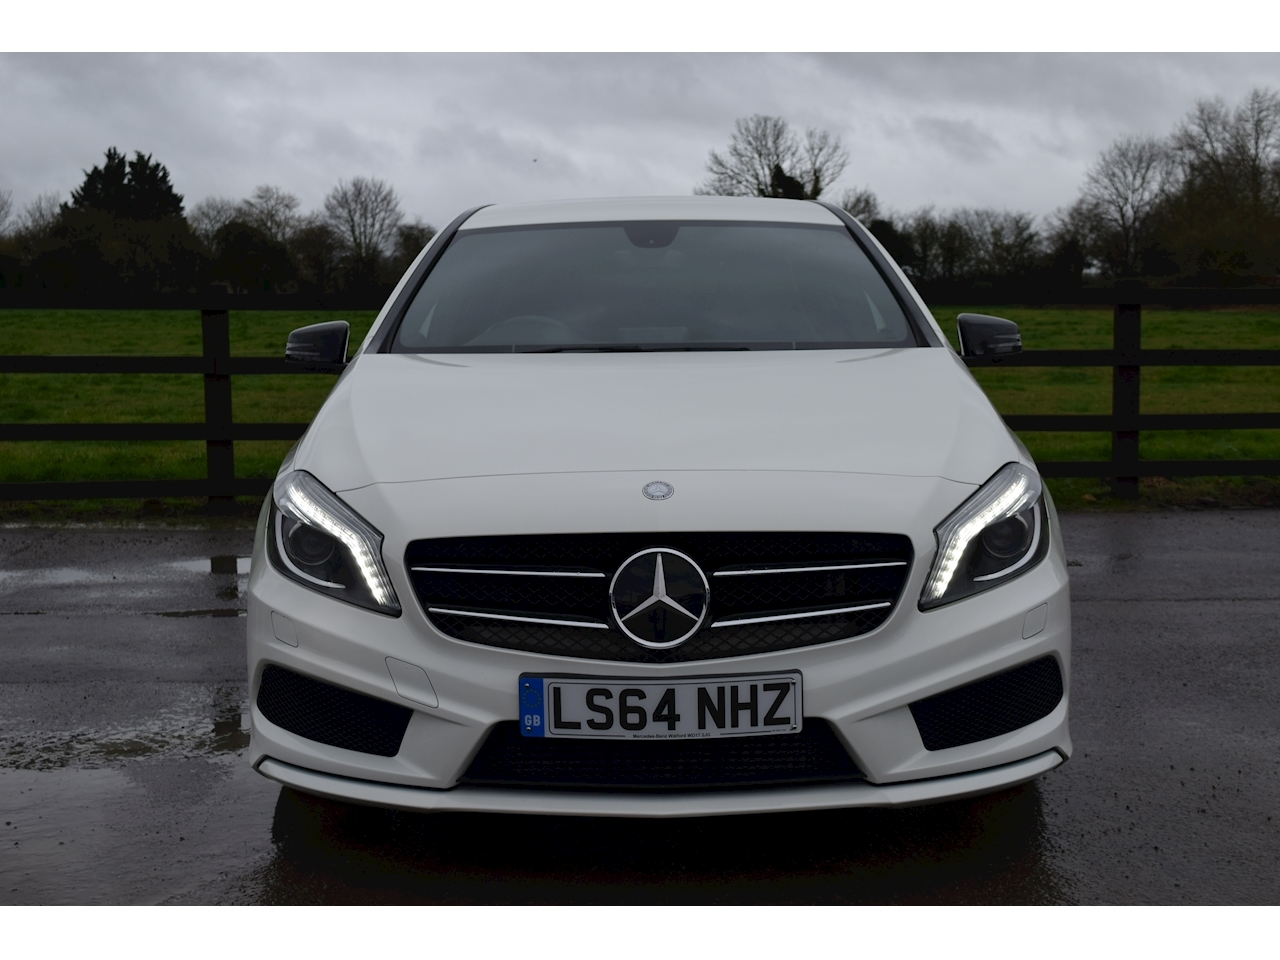 Mercedes-Benz A-Class A180 Cdi Blueefficiency Amg Sport Hatchback 1.5 Manual Diesel